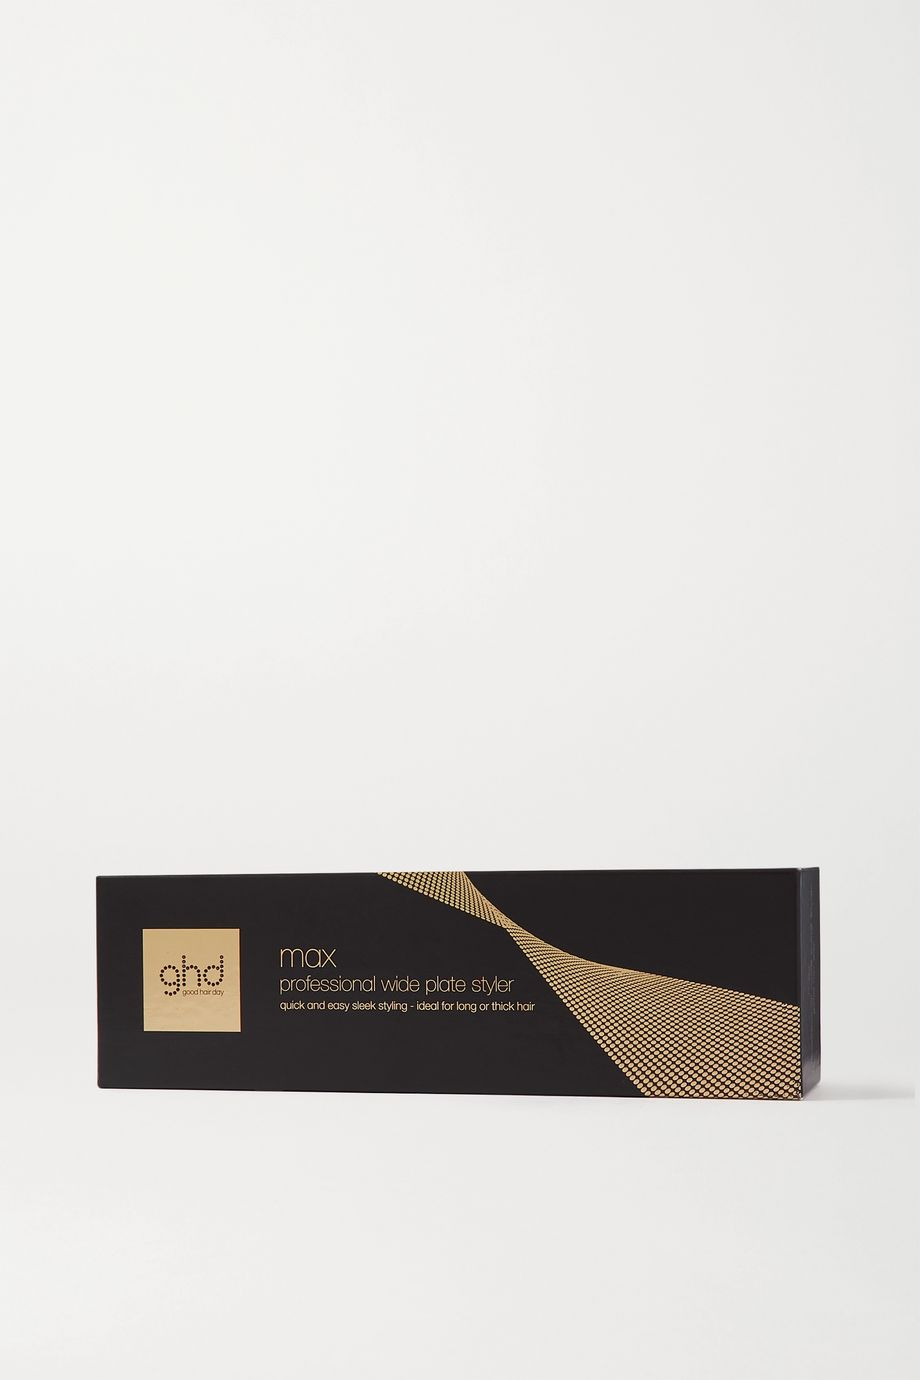 ghd Max Professional Wide Plate Styler - UK 3-pin plug